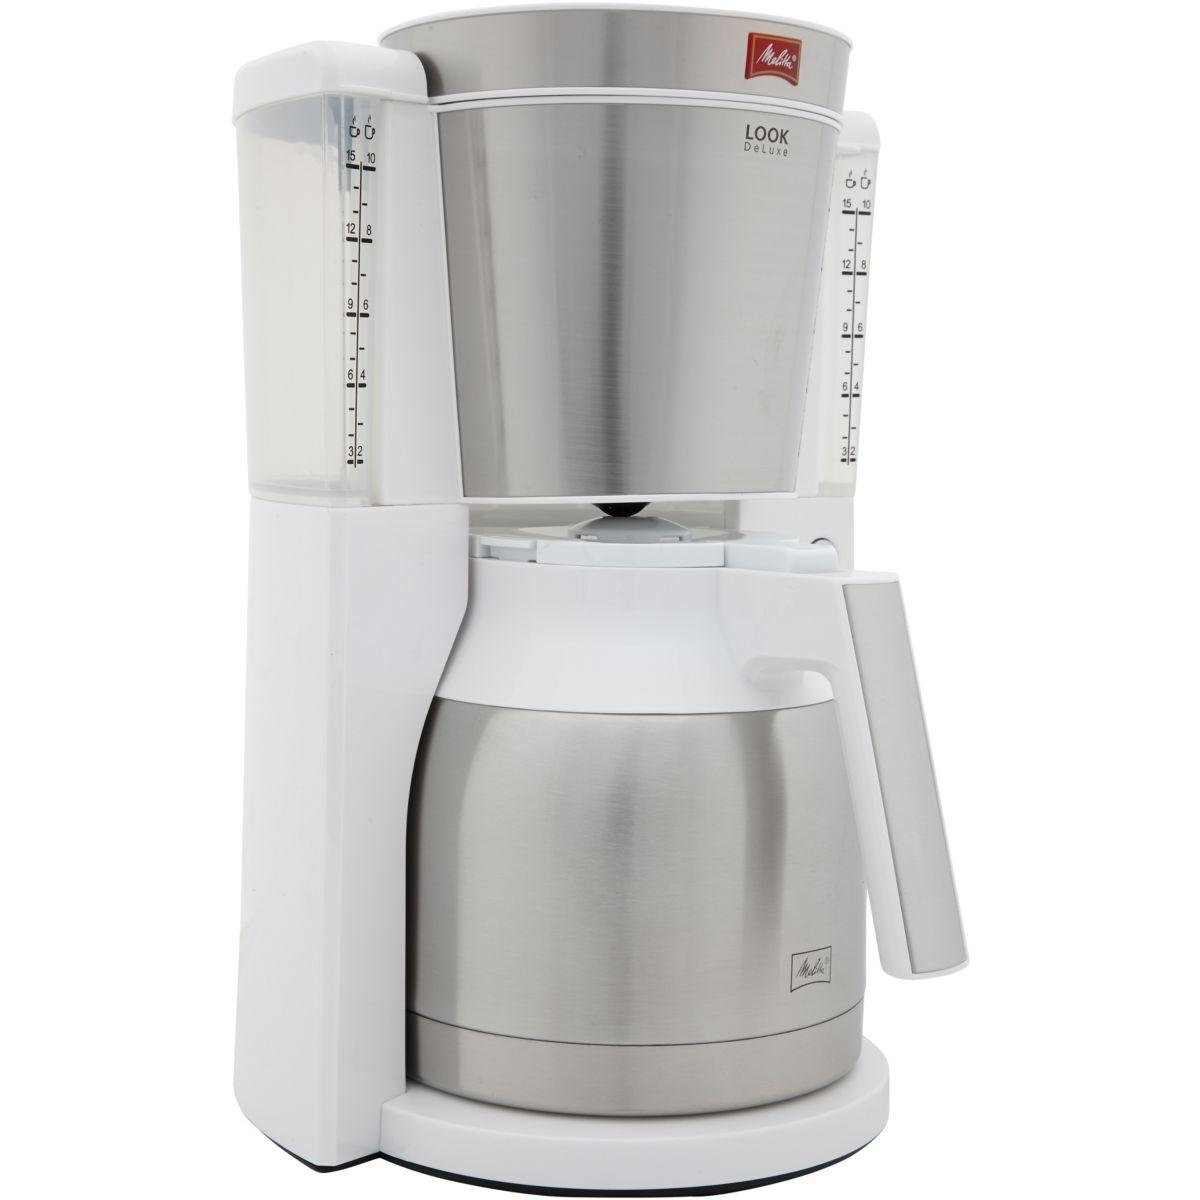 Cafeti�re isotherme melitta look iv therm deluxe blanc (photo)